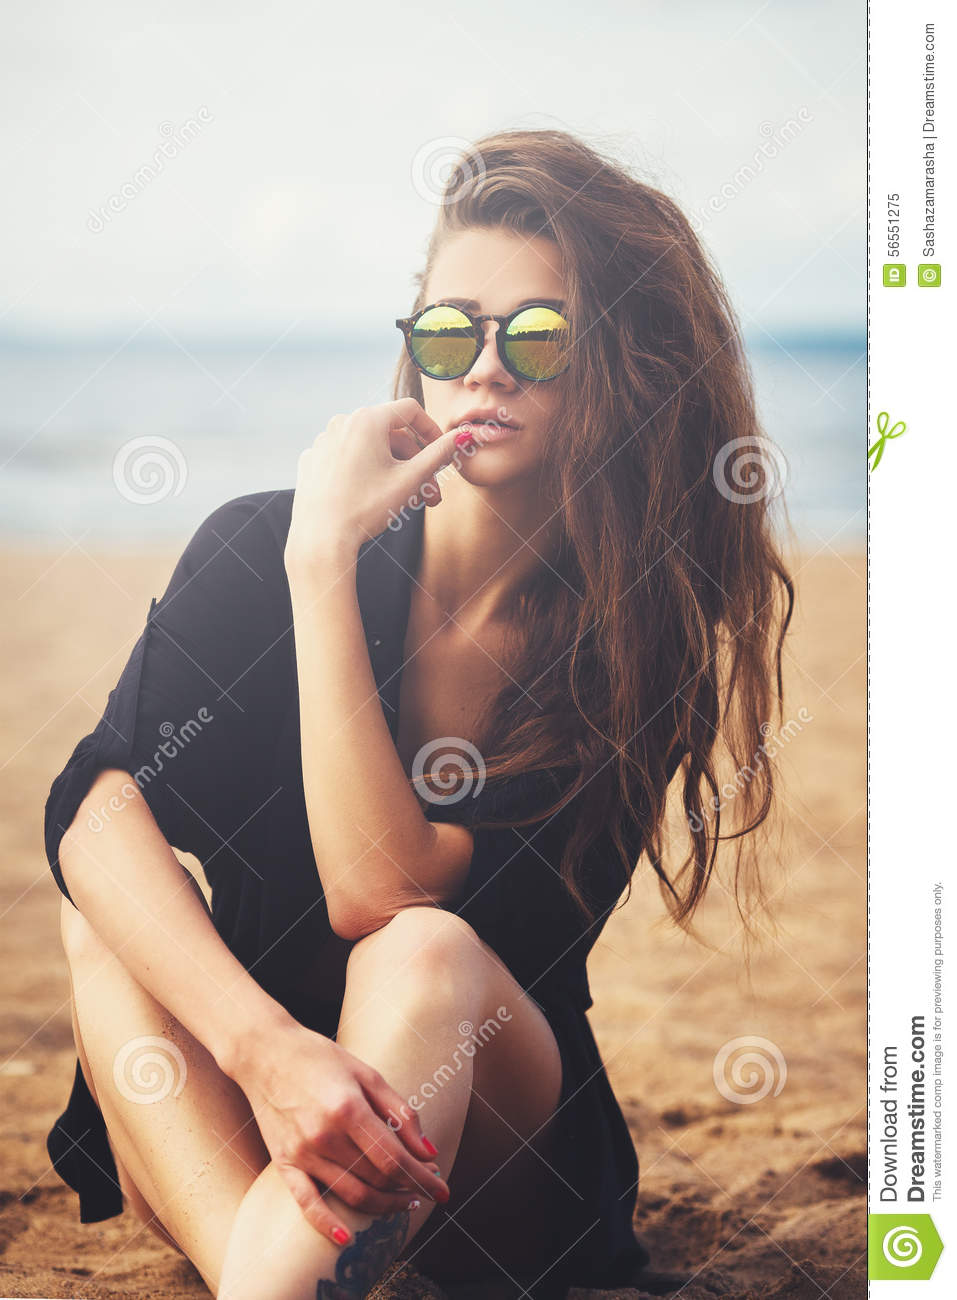 Fille nue de plage photo stock Image du seins, adulte